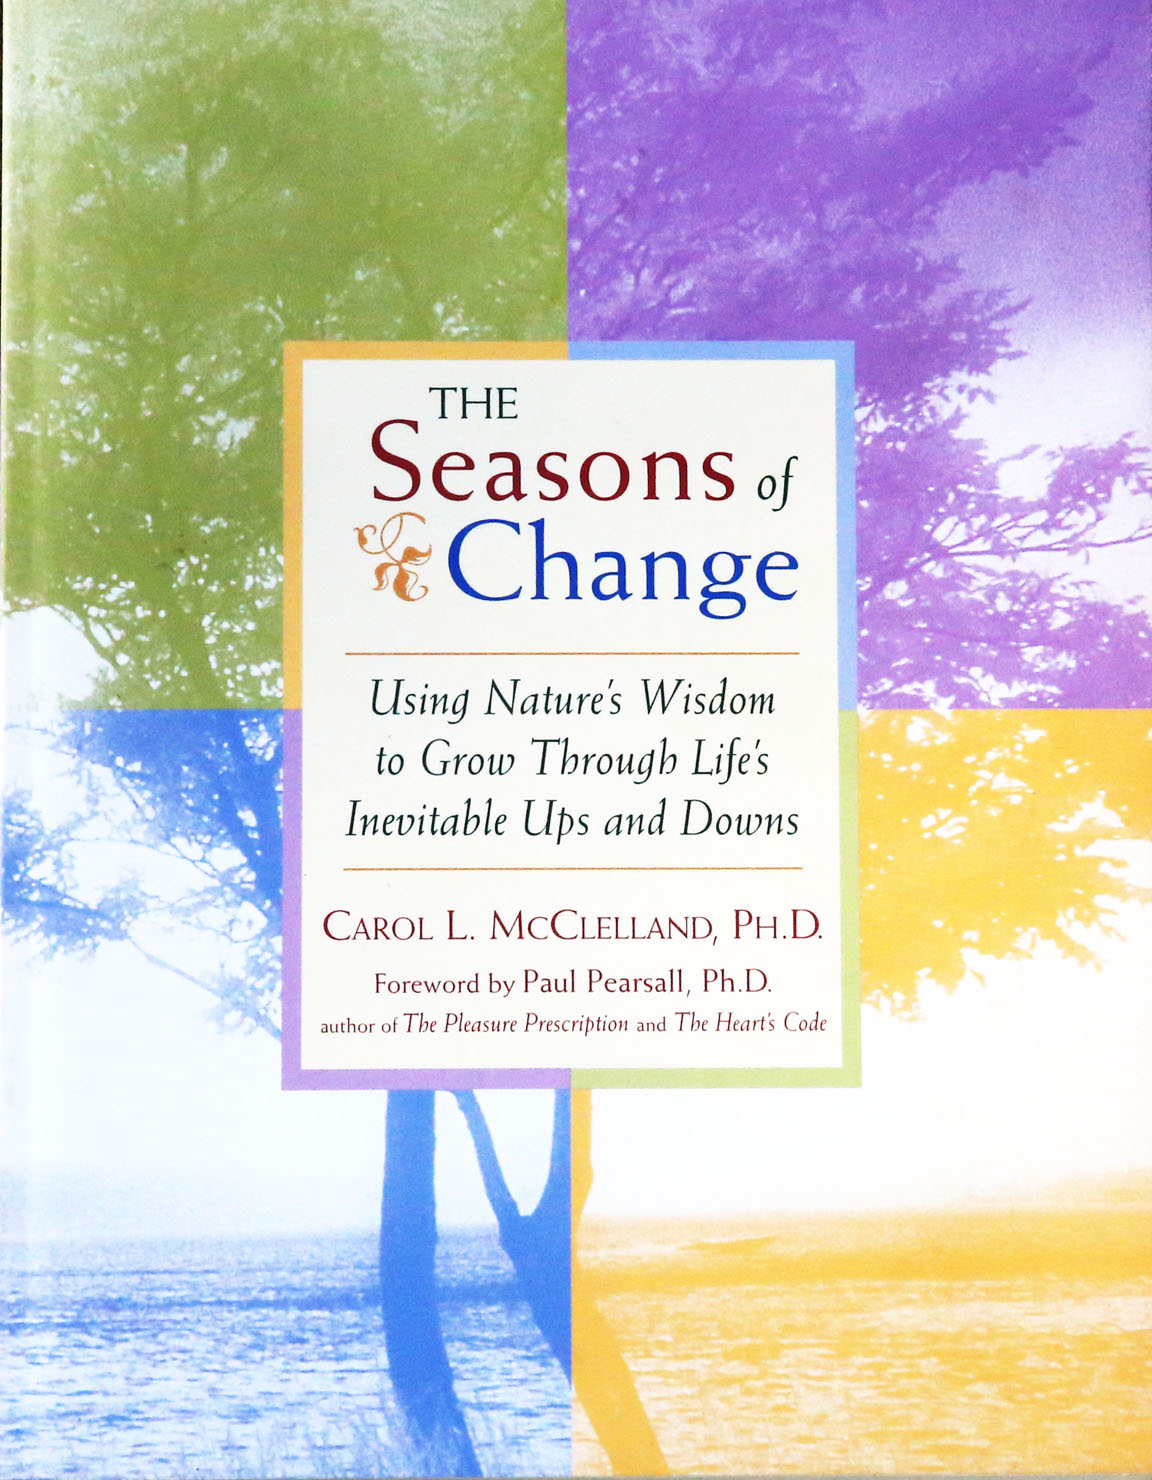 Seasons of Change Book Cover - small.jpg